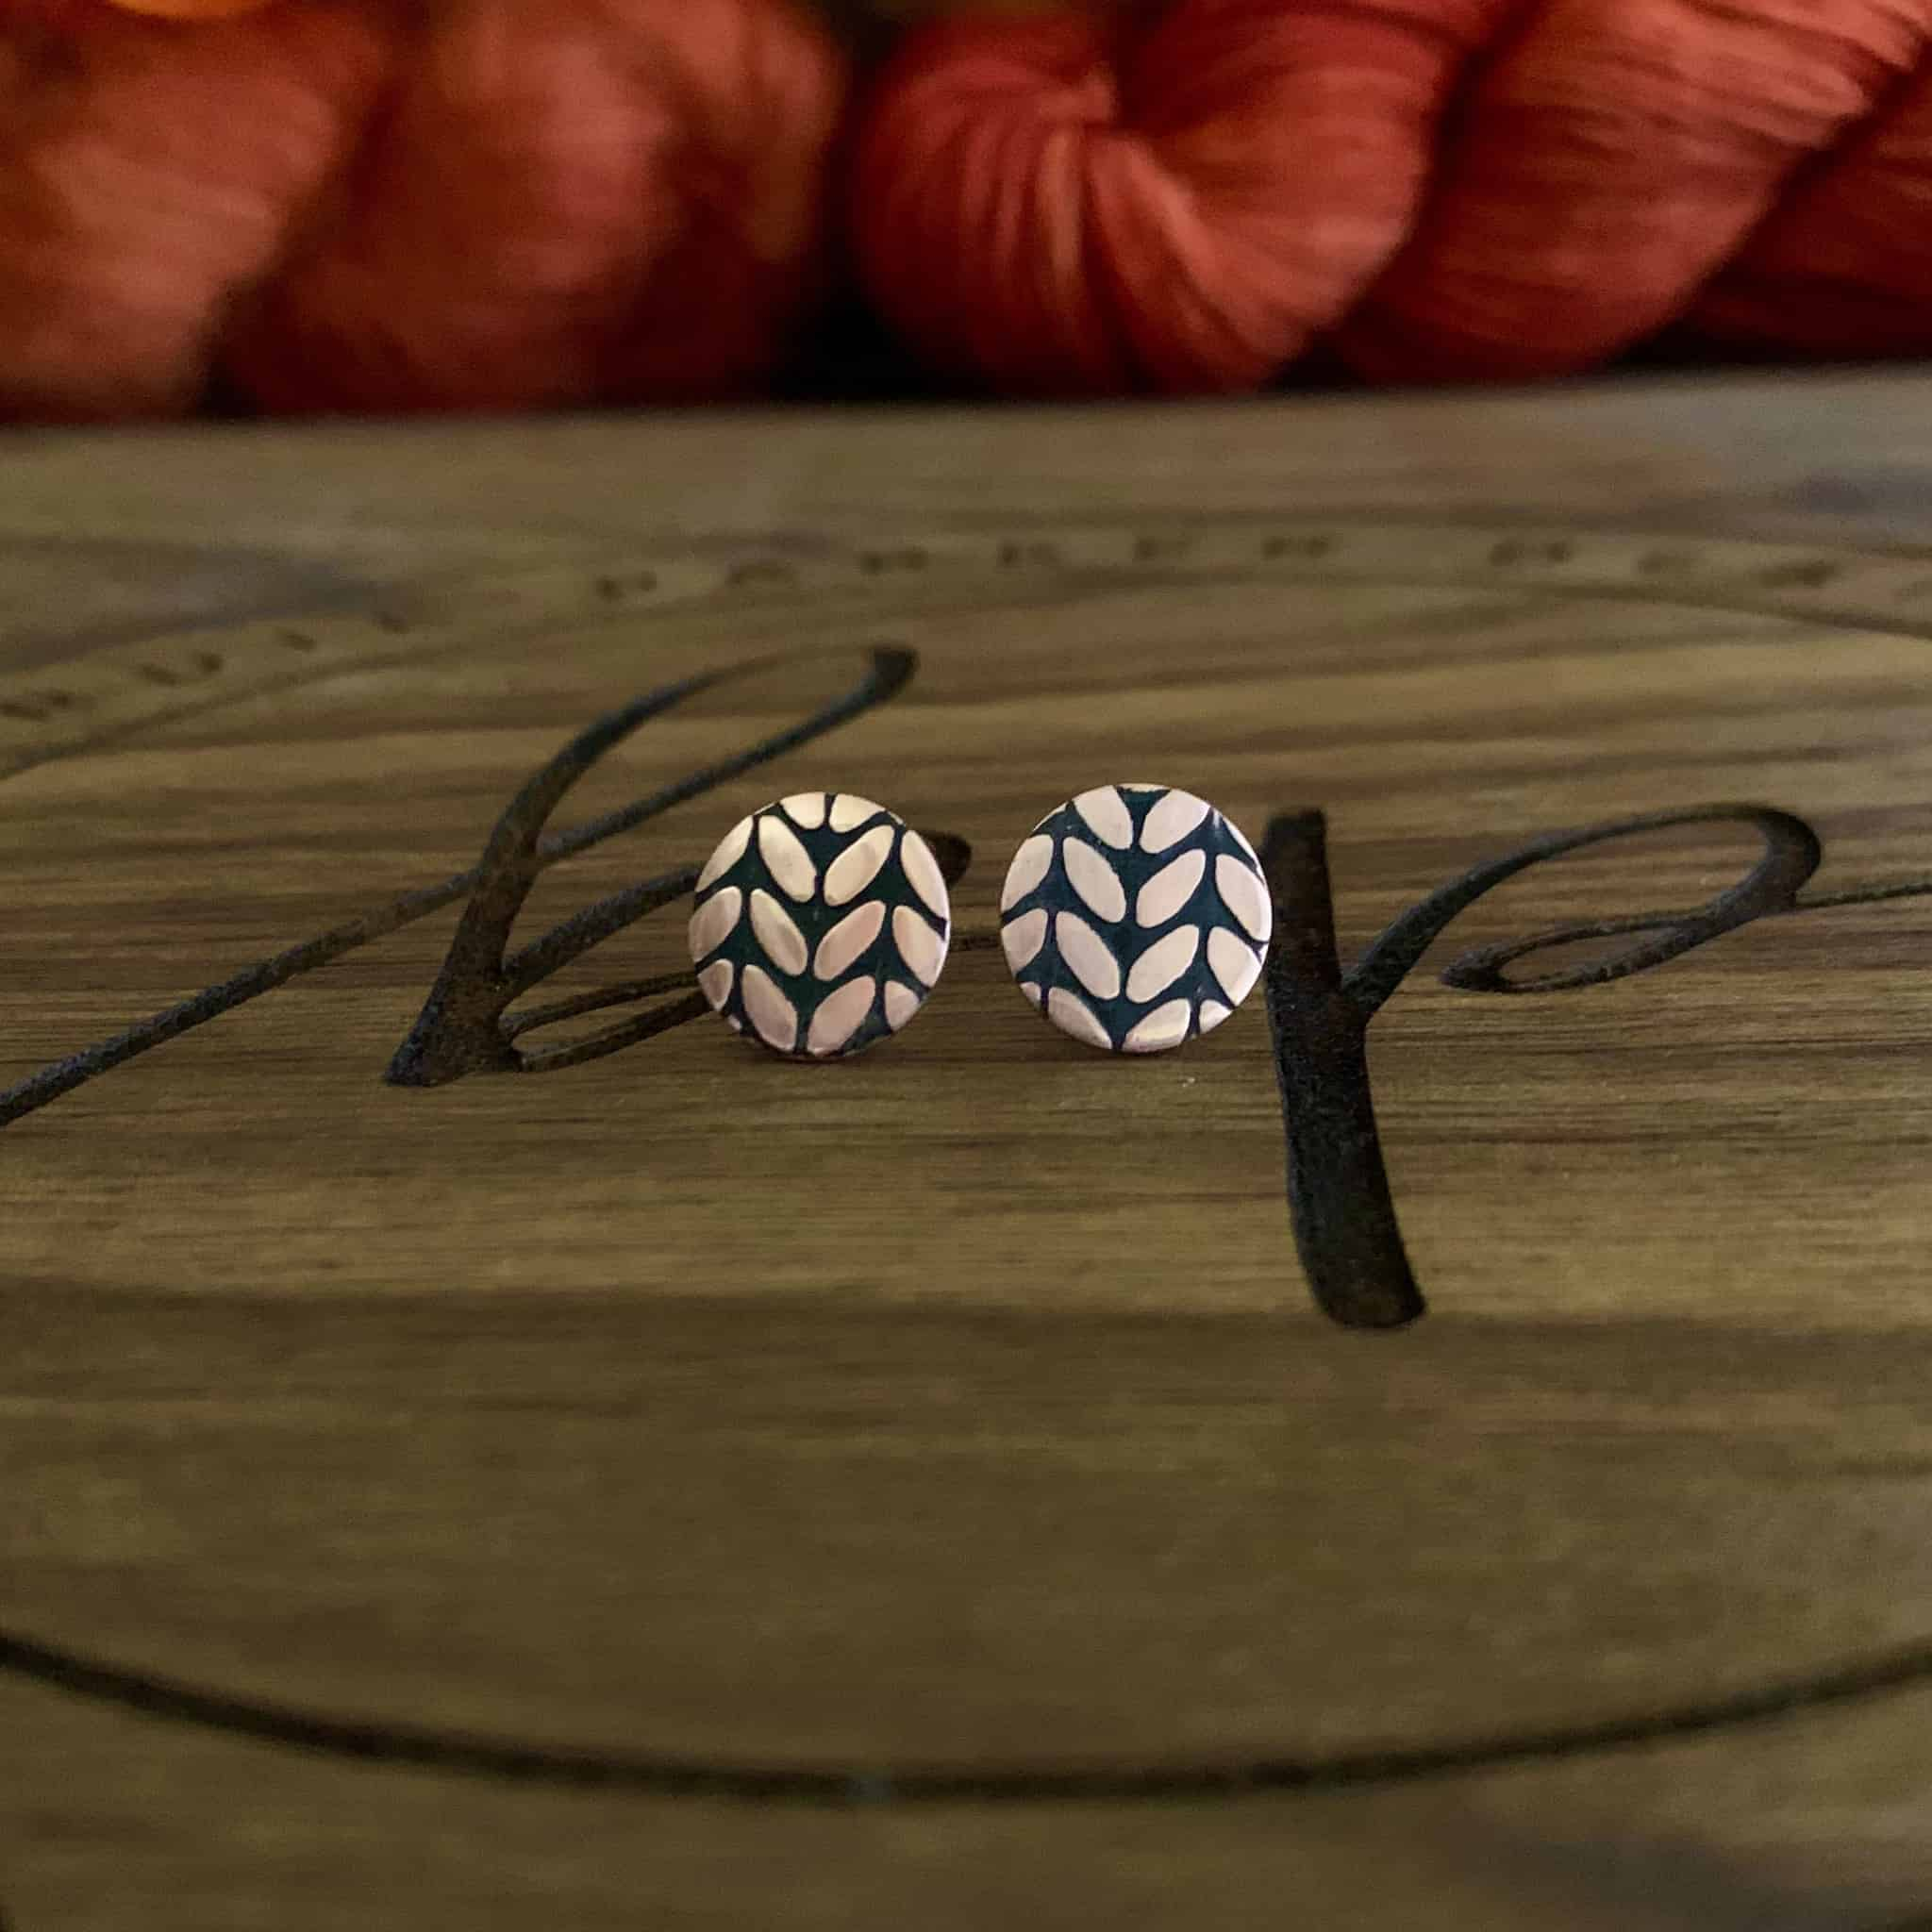 Round earrings with etched knitting stitches.